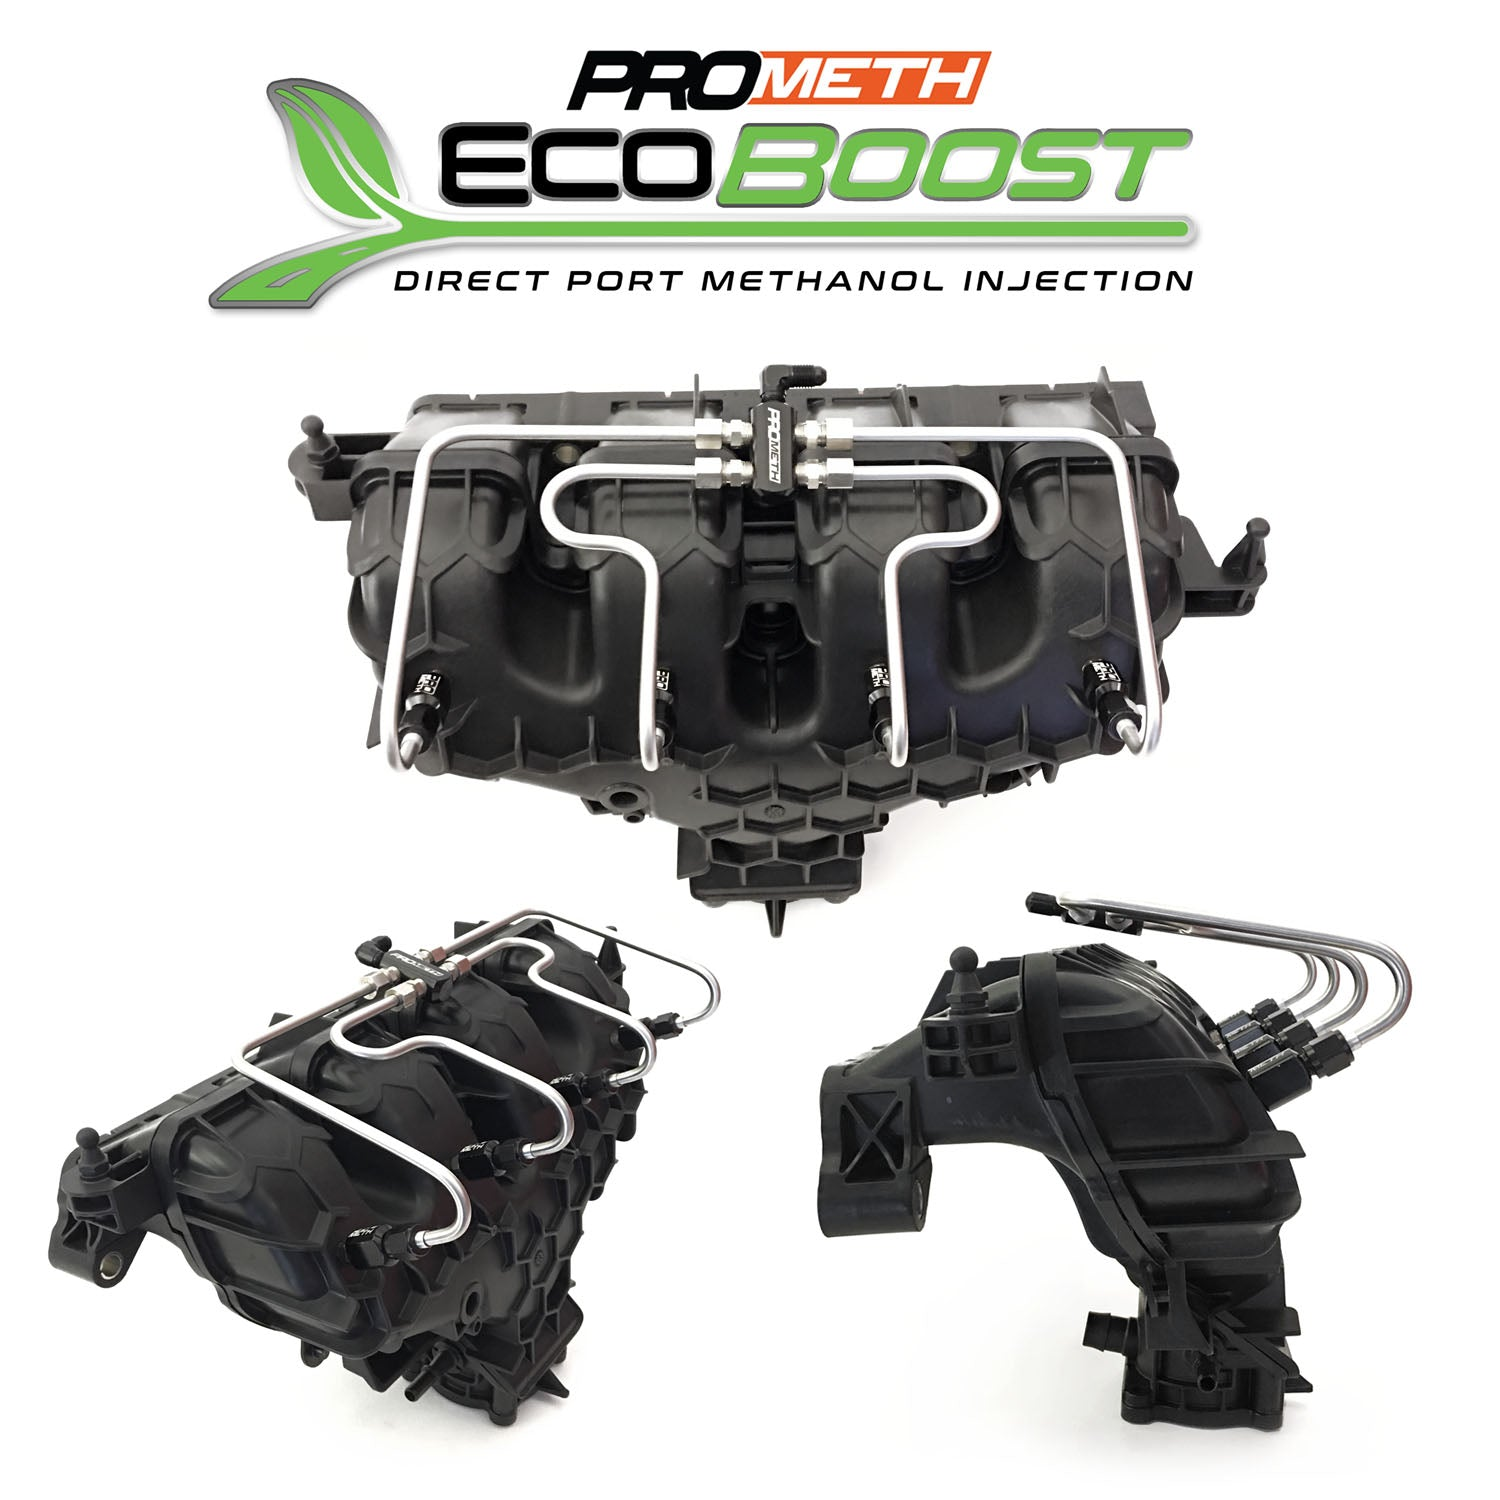 Ford SVT Focus Direct Port Water Methanol Injection System